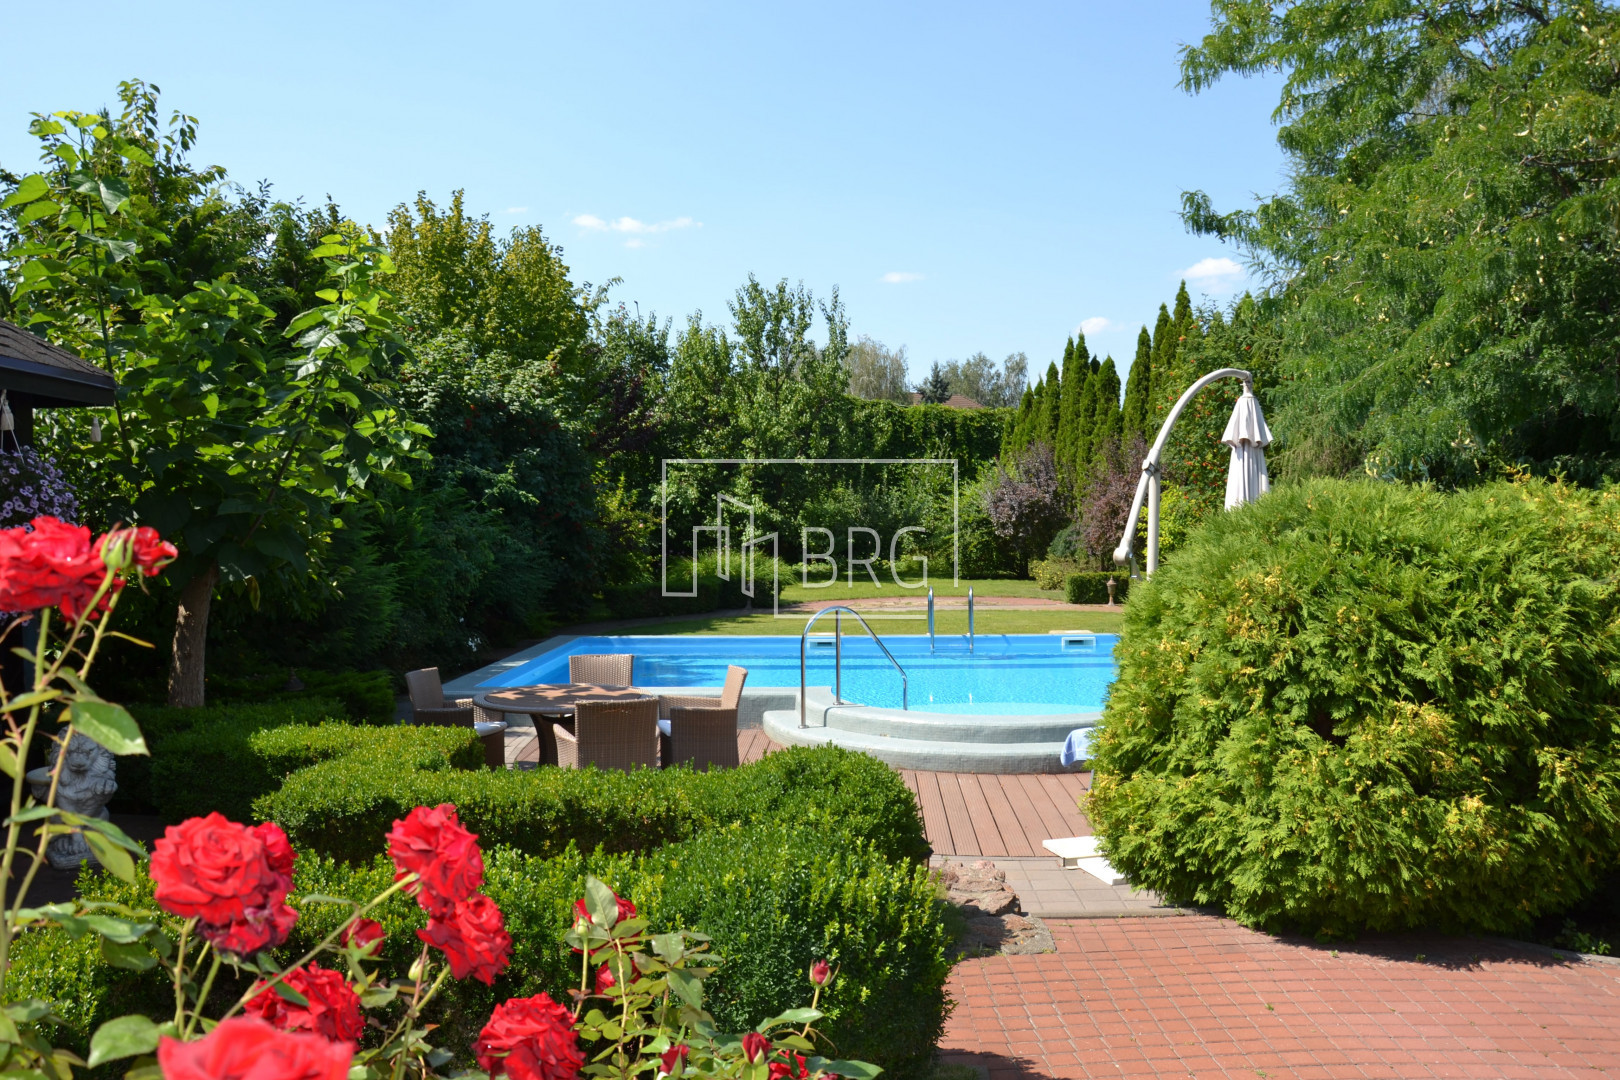 For sale house KG Golden Gate 550m with swimming pool. Kiev region